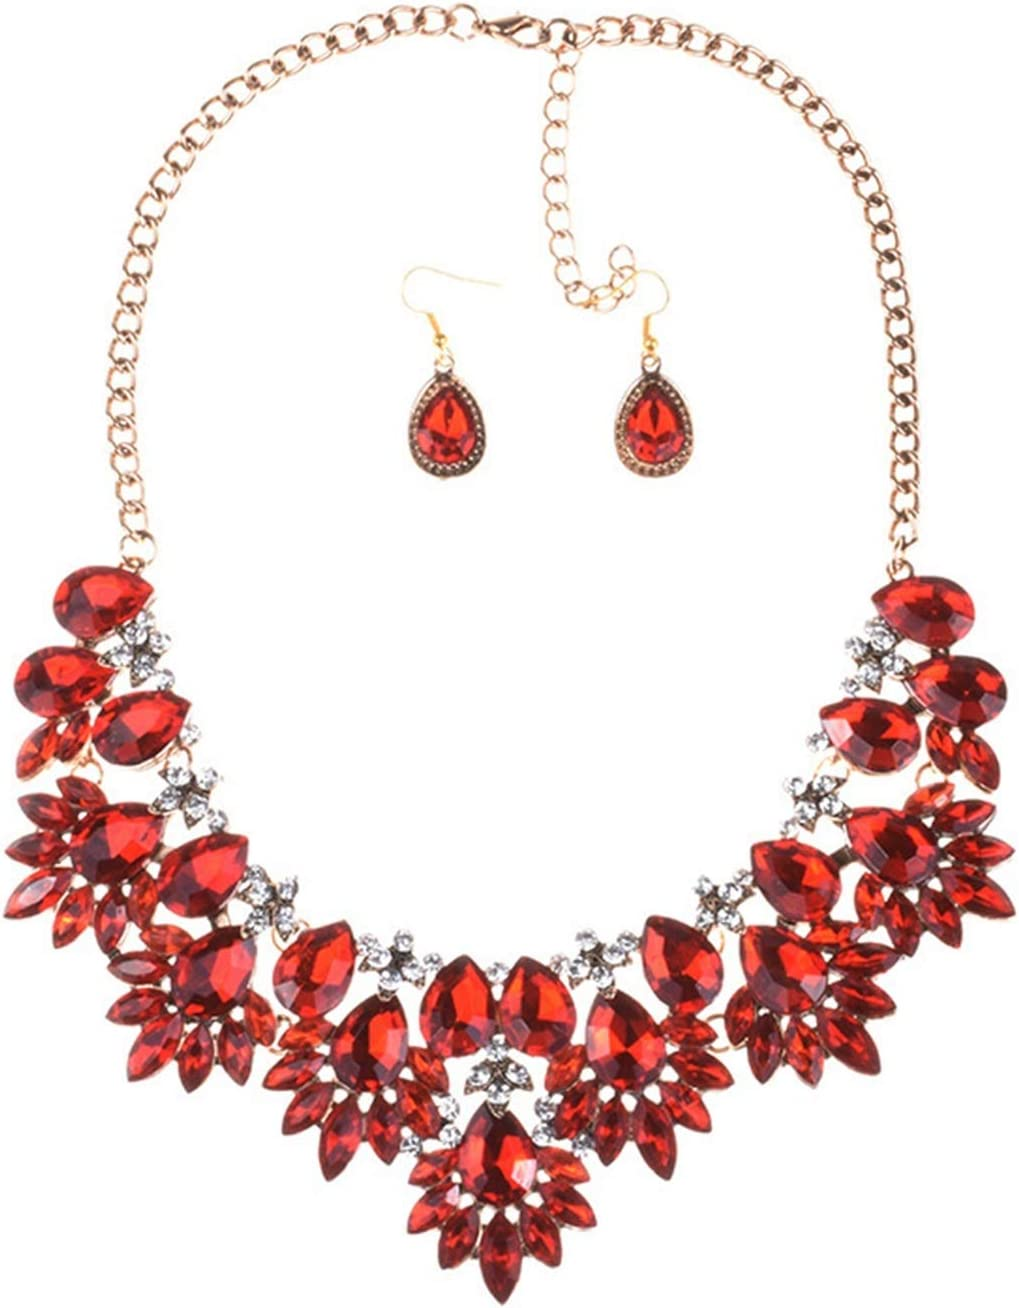 DSJTCH European or American Jewelry Fashion Elegant Boom Necklace Long Clavicle Chain Ear Ring Neck Jewelry Jewelry Set (Color : Red)